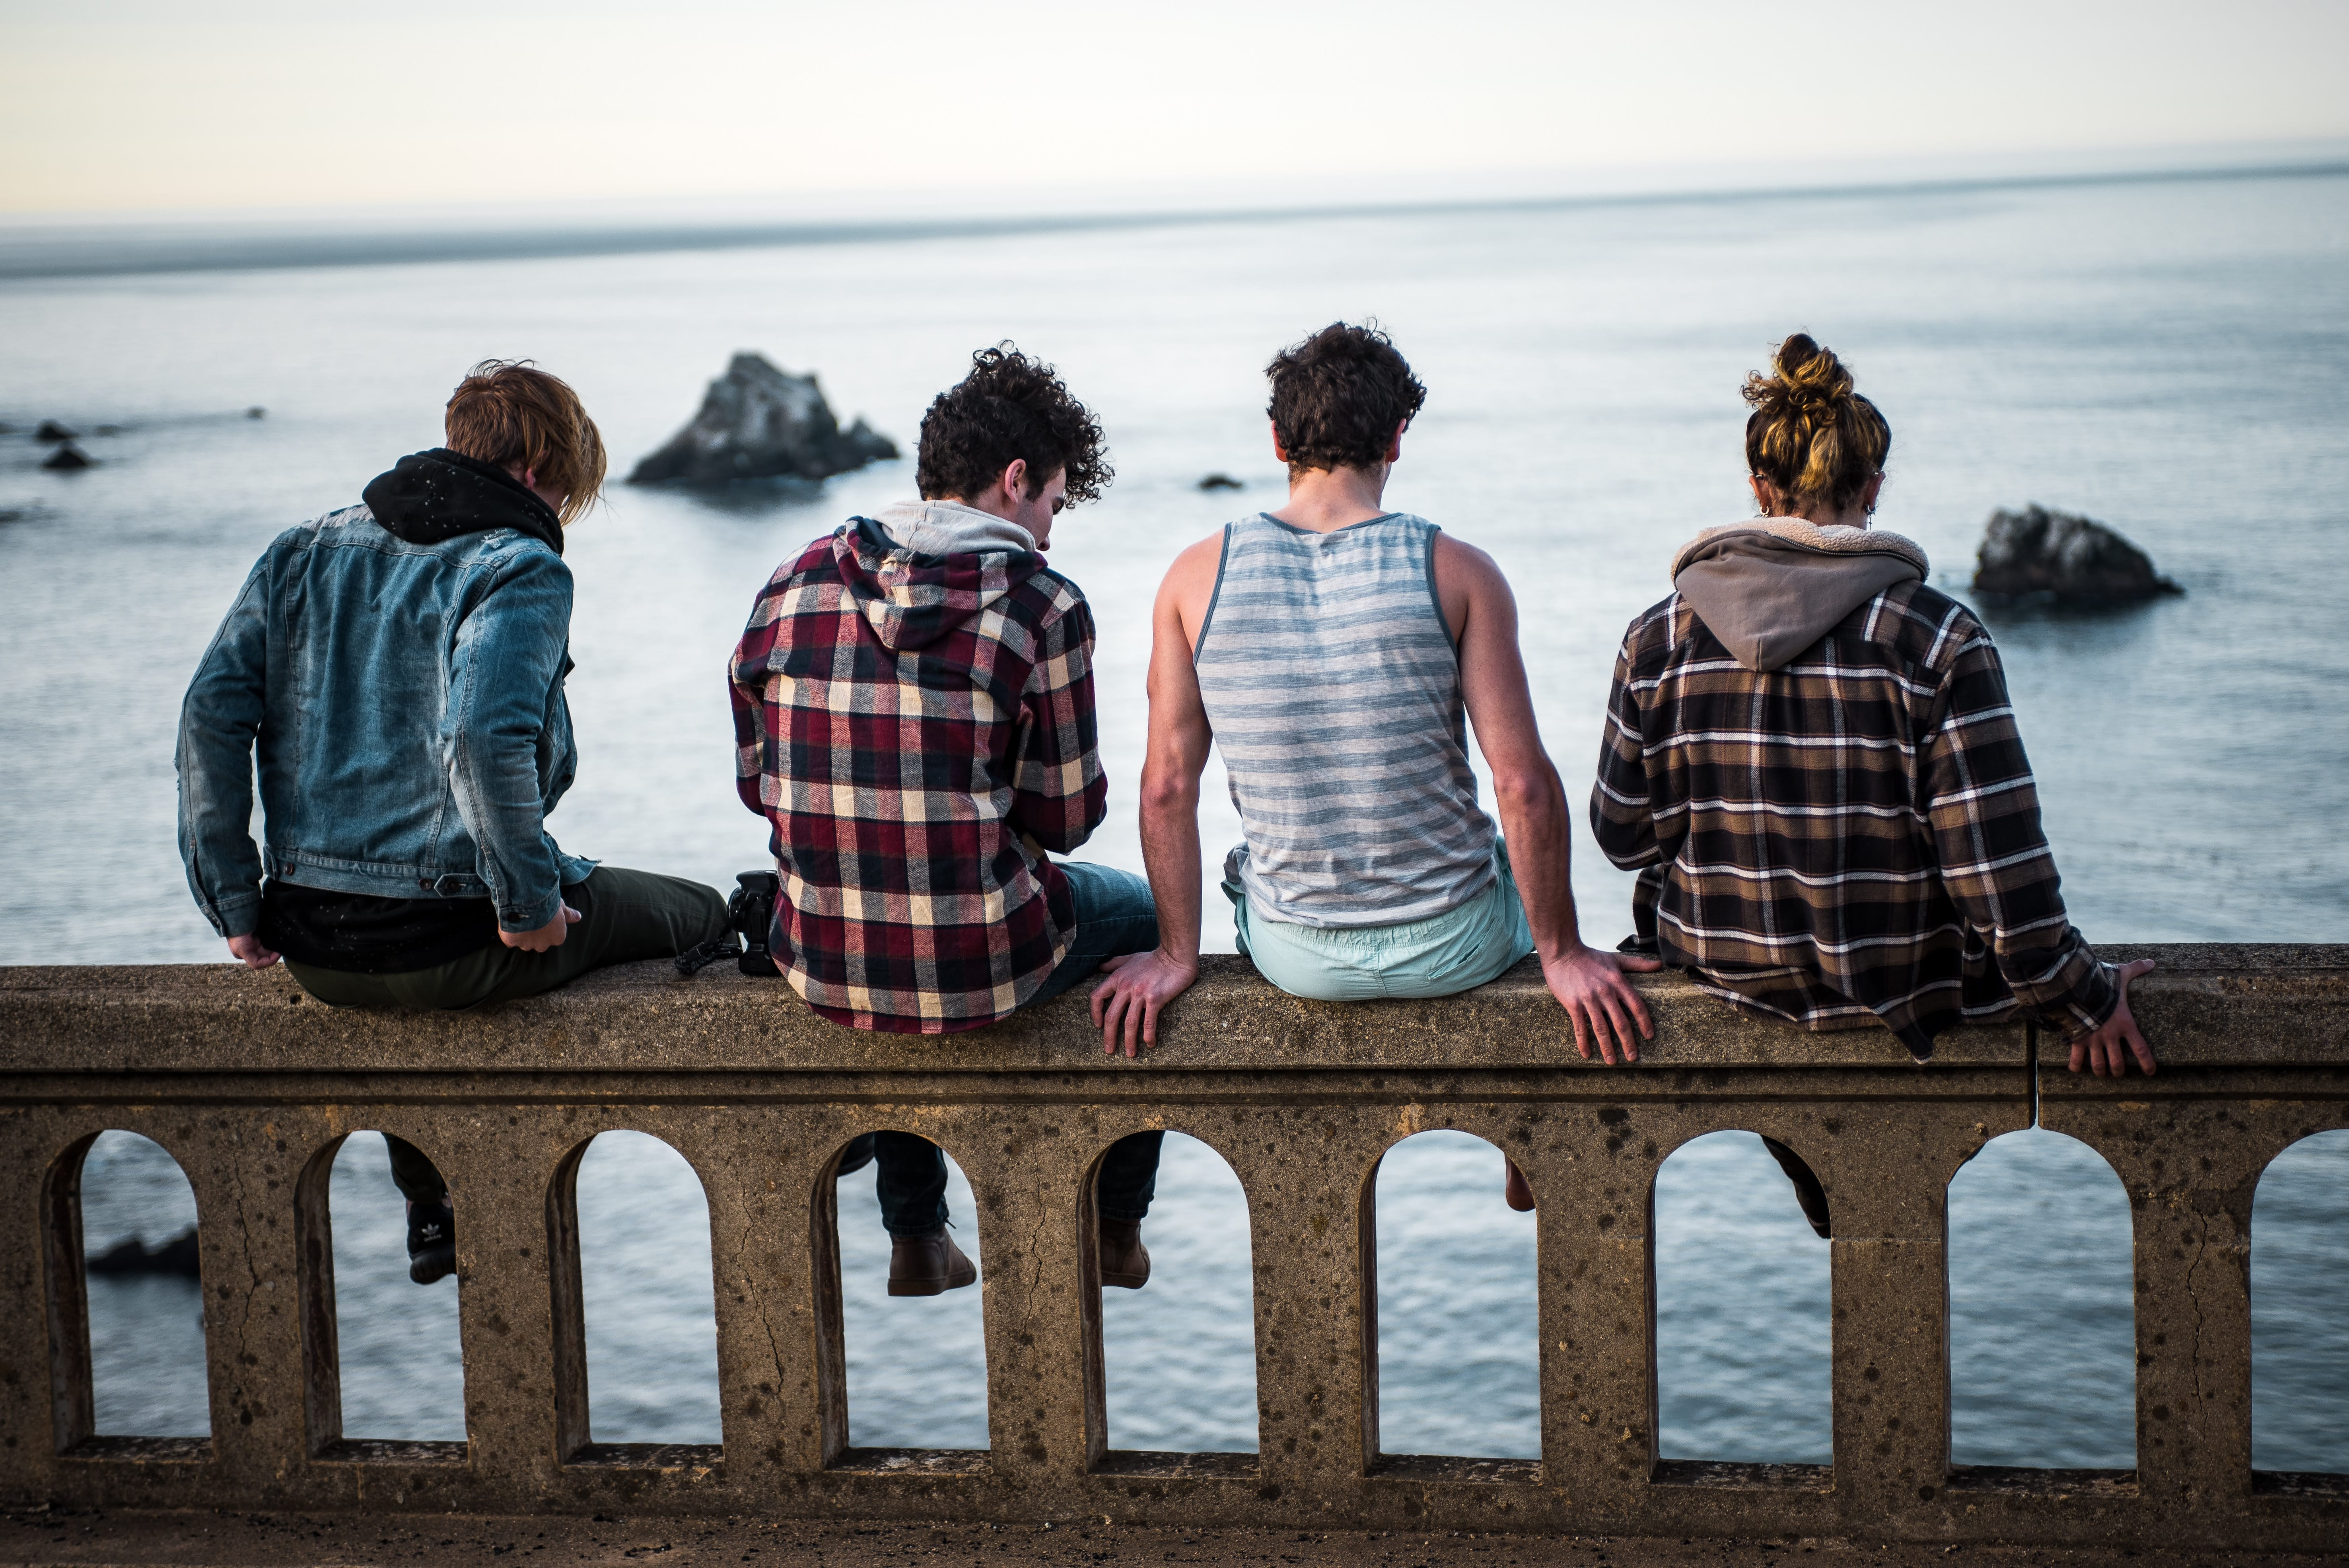 Four teens sitting on bench in front of body of water; image by Sammie Vasquez, via Unsplash.com.